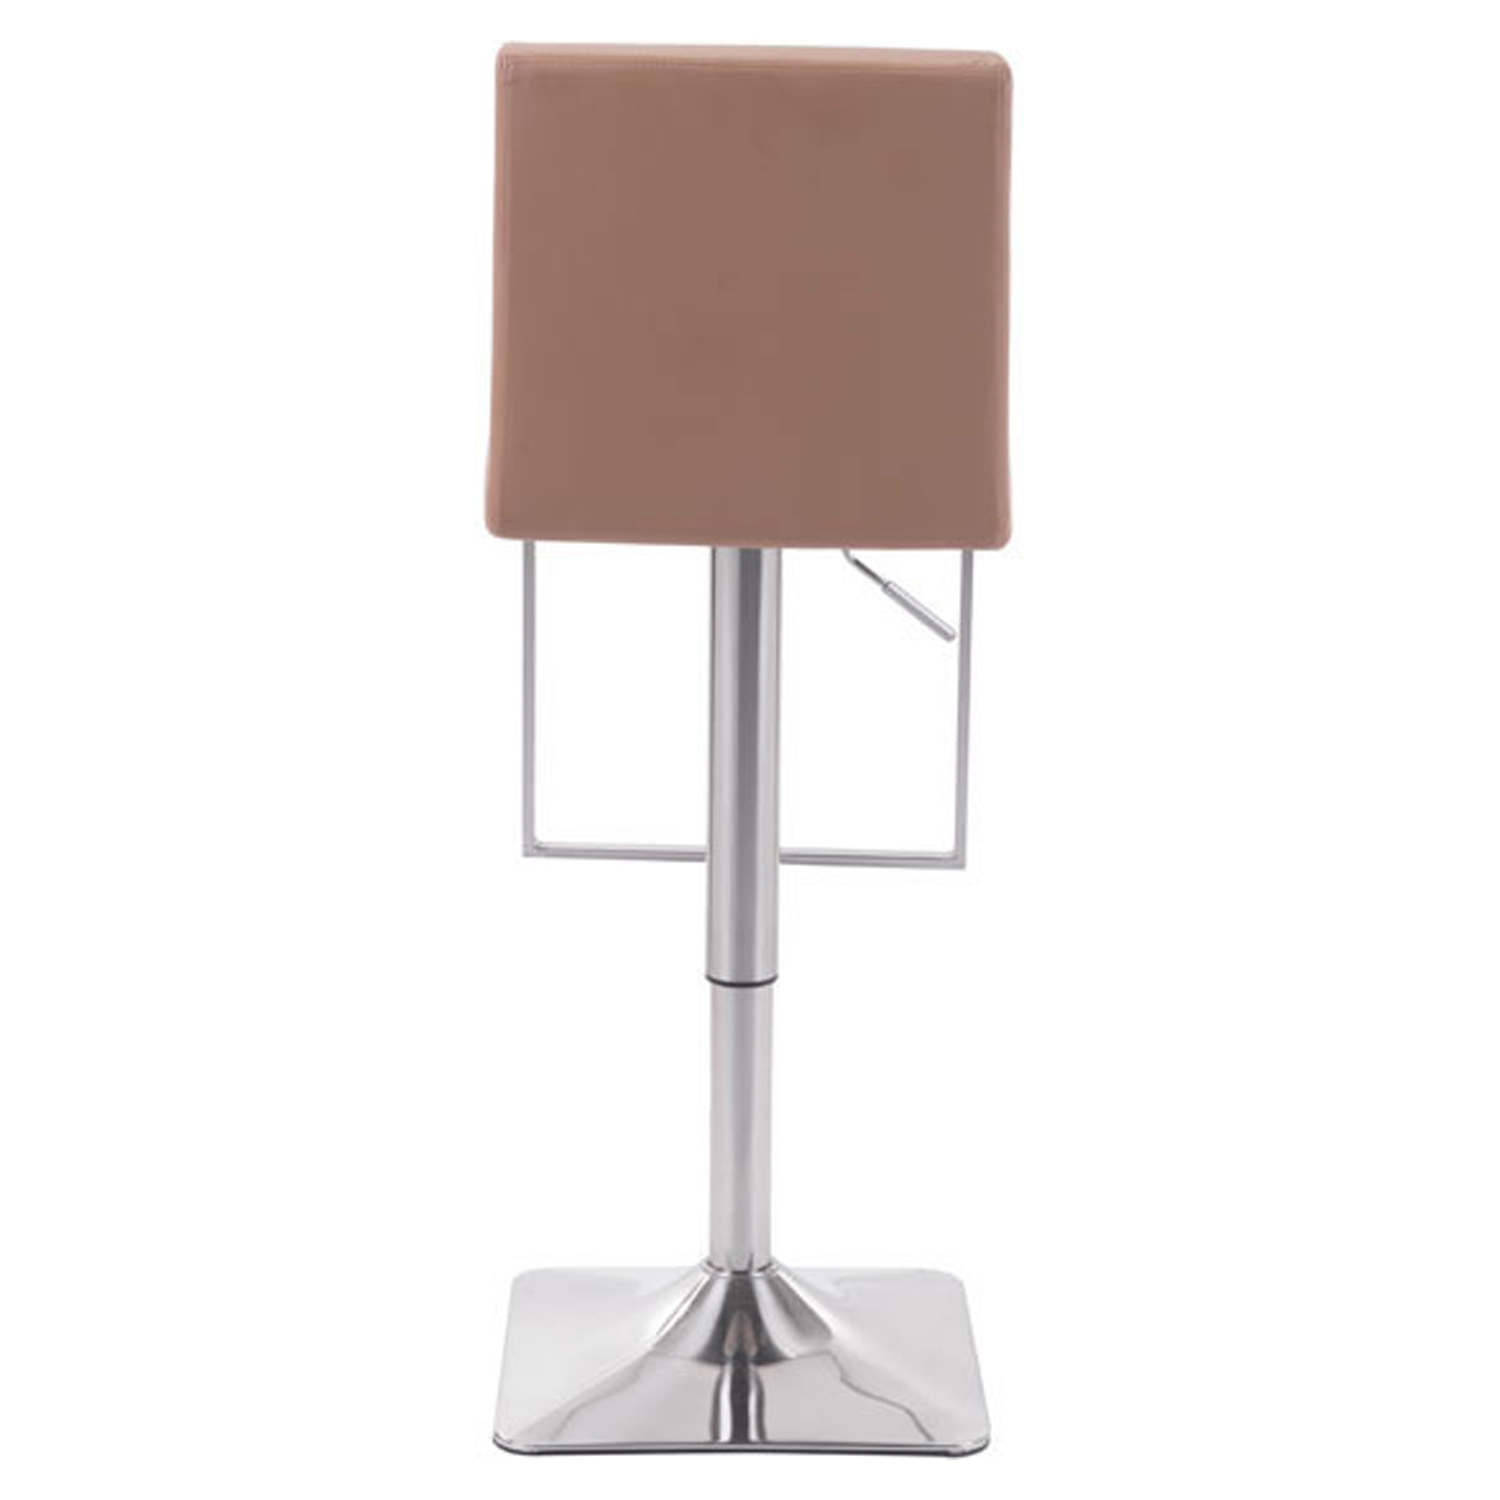 Puma Bar Chair - Adjustable, Taupe - ZM-100312